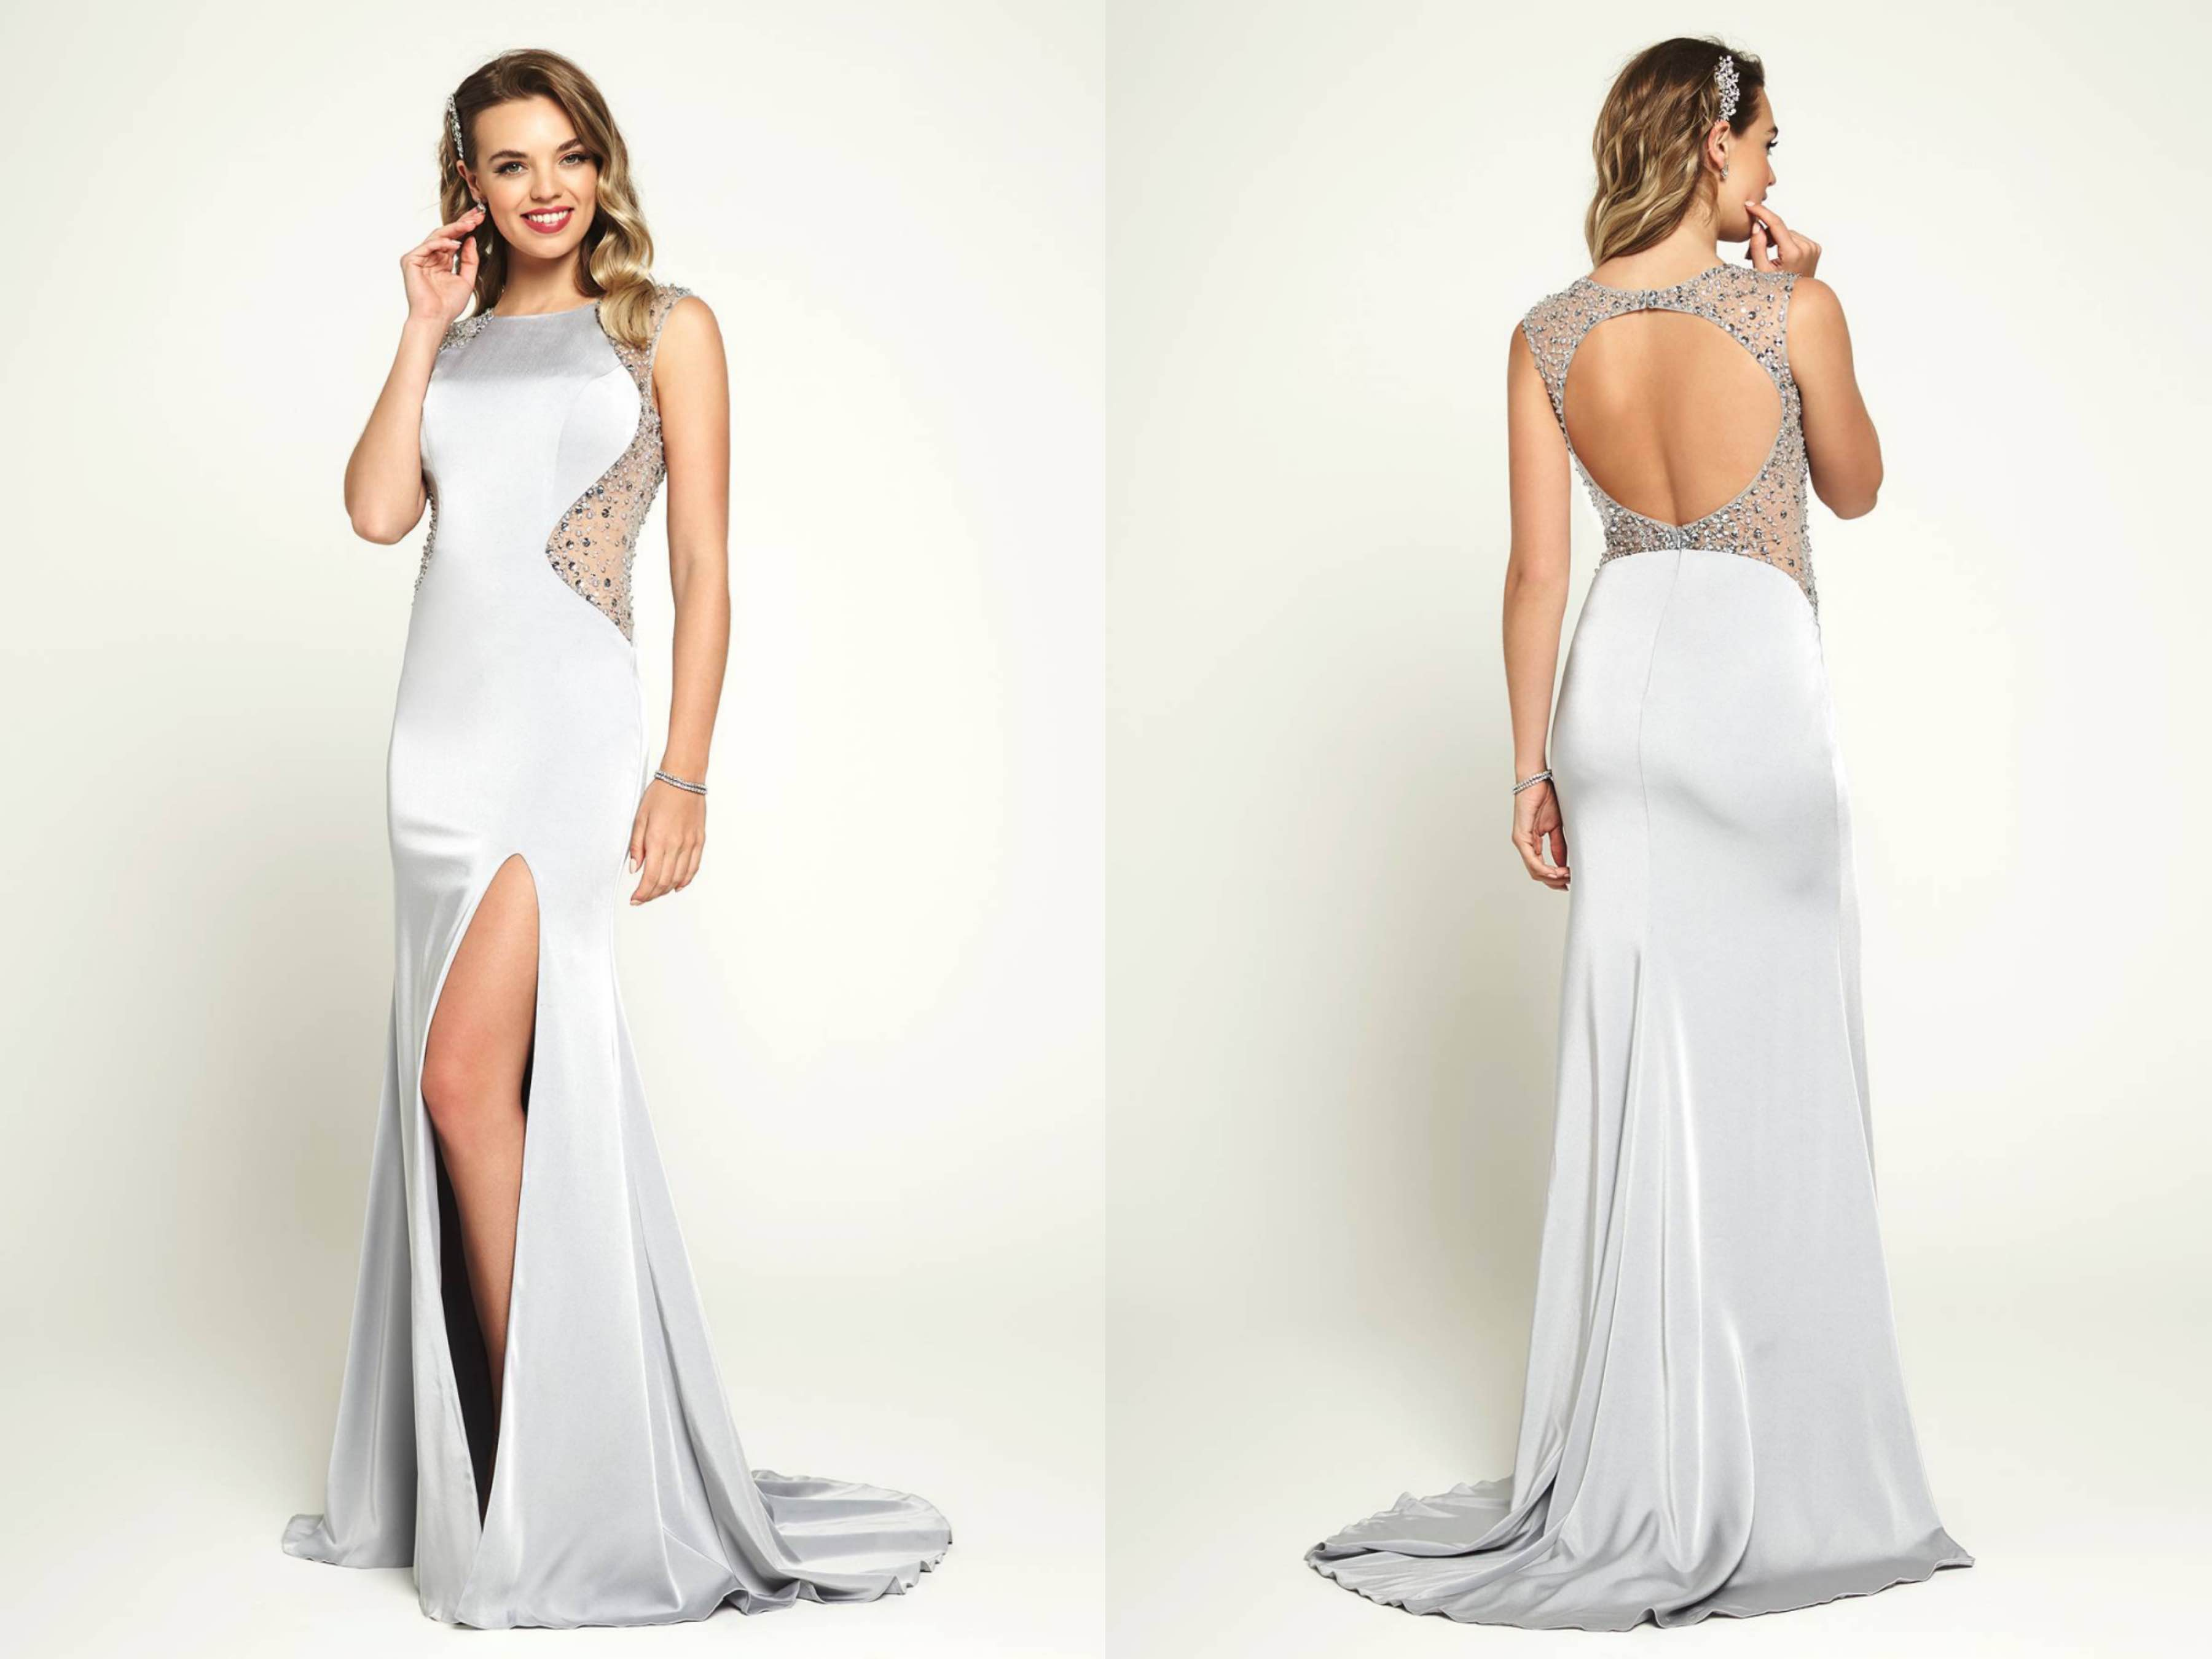 2020 prom collection